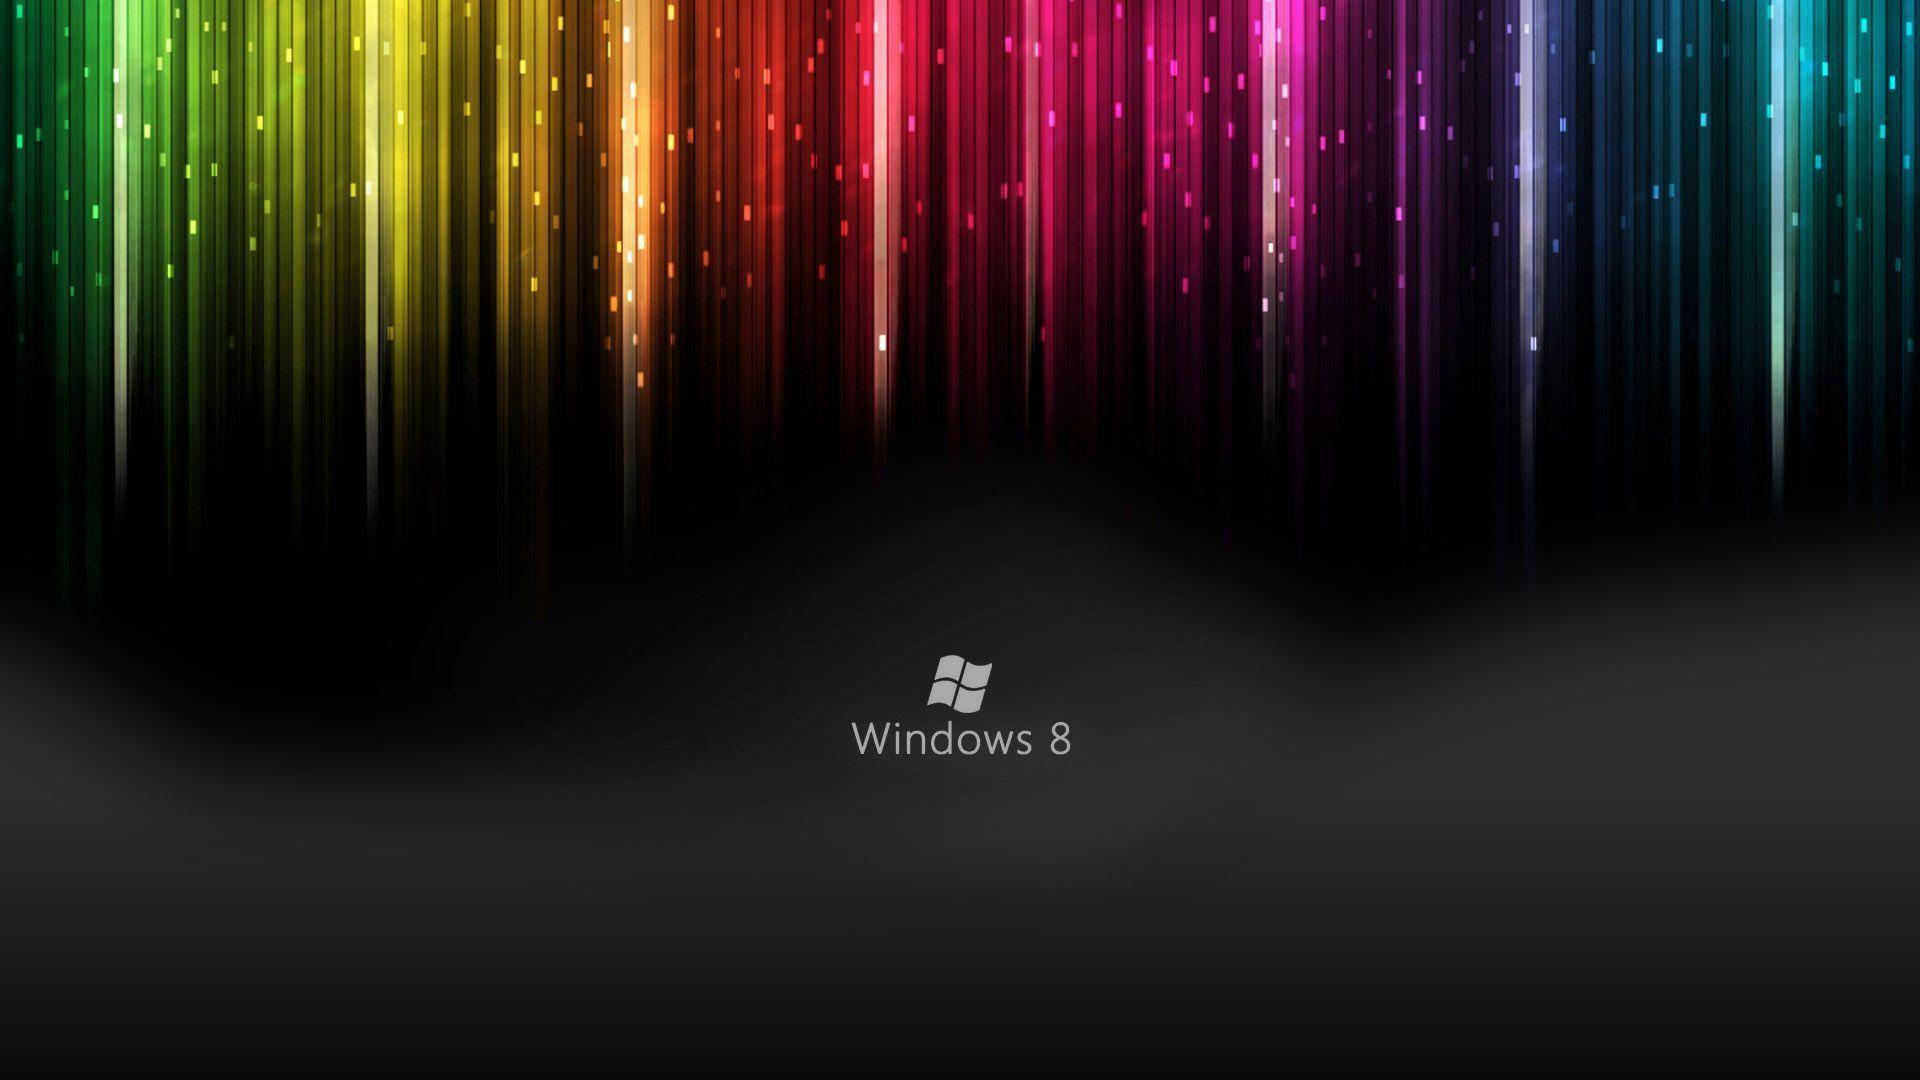 Windows 8 hd wallpapers wallpaper cave for Window 8 1 wallpaper